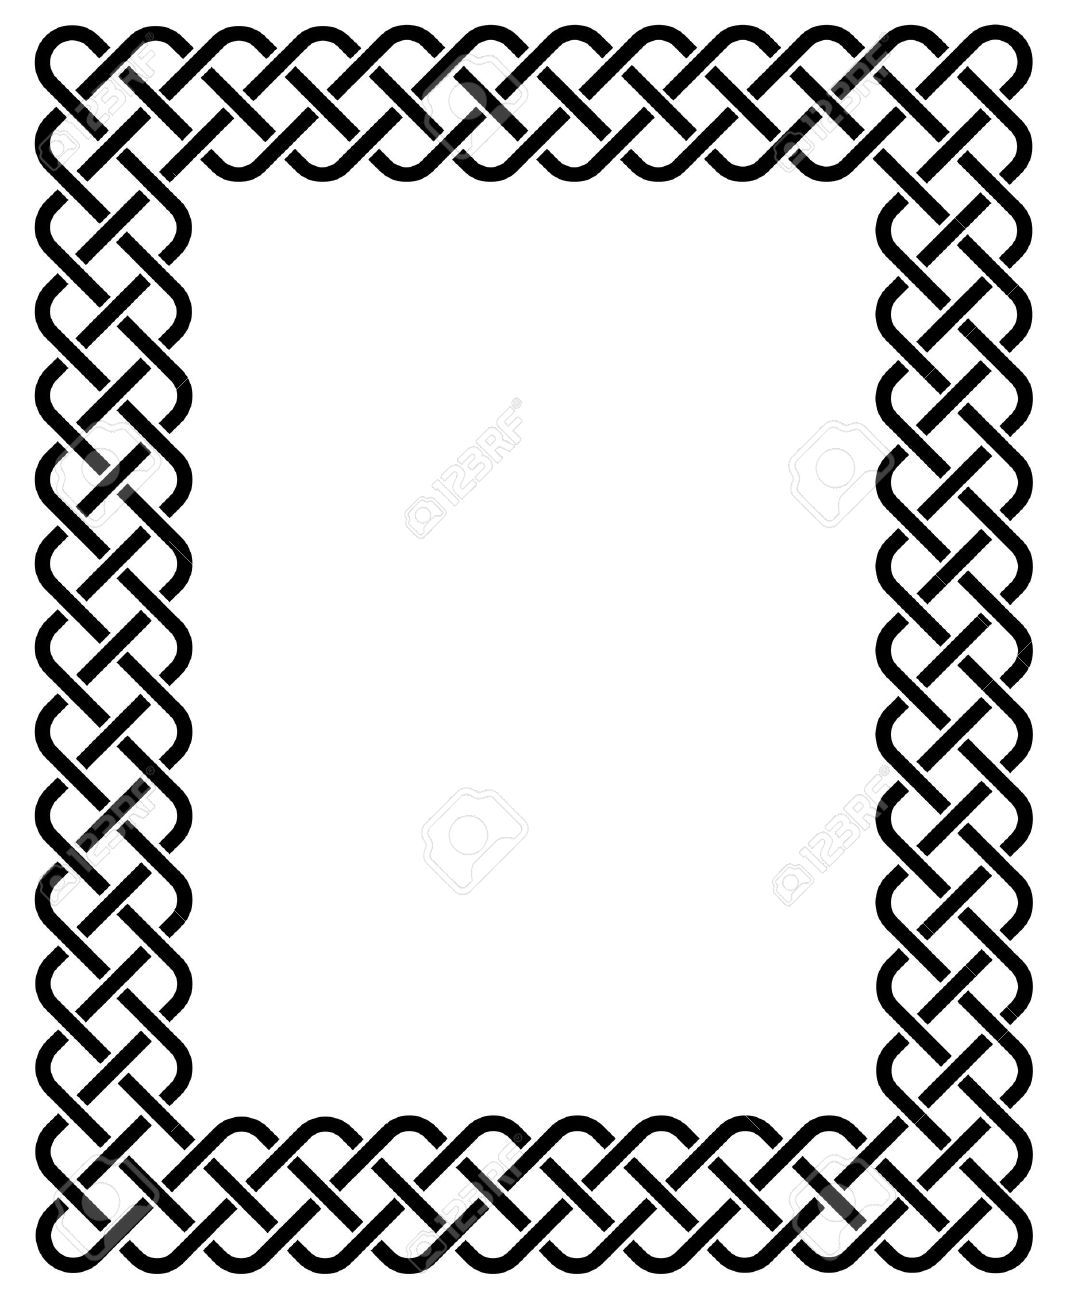 traditional celtic knot braided frame royalty free cliparts rh 123rf com celtic pattern border vector celtic pattern border vector